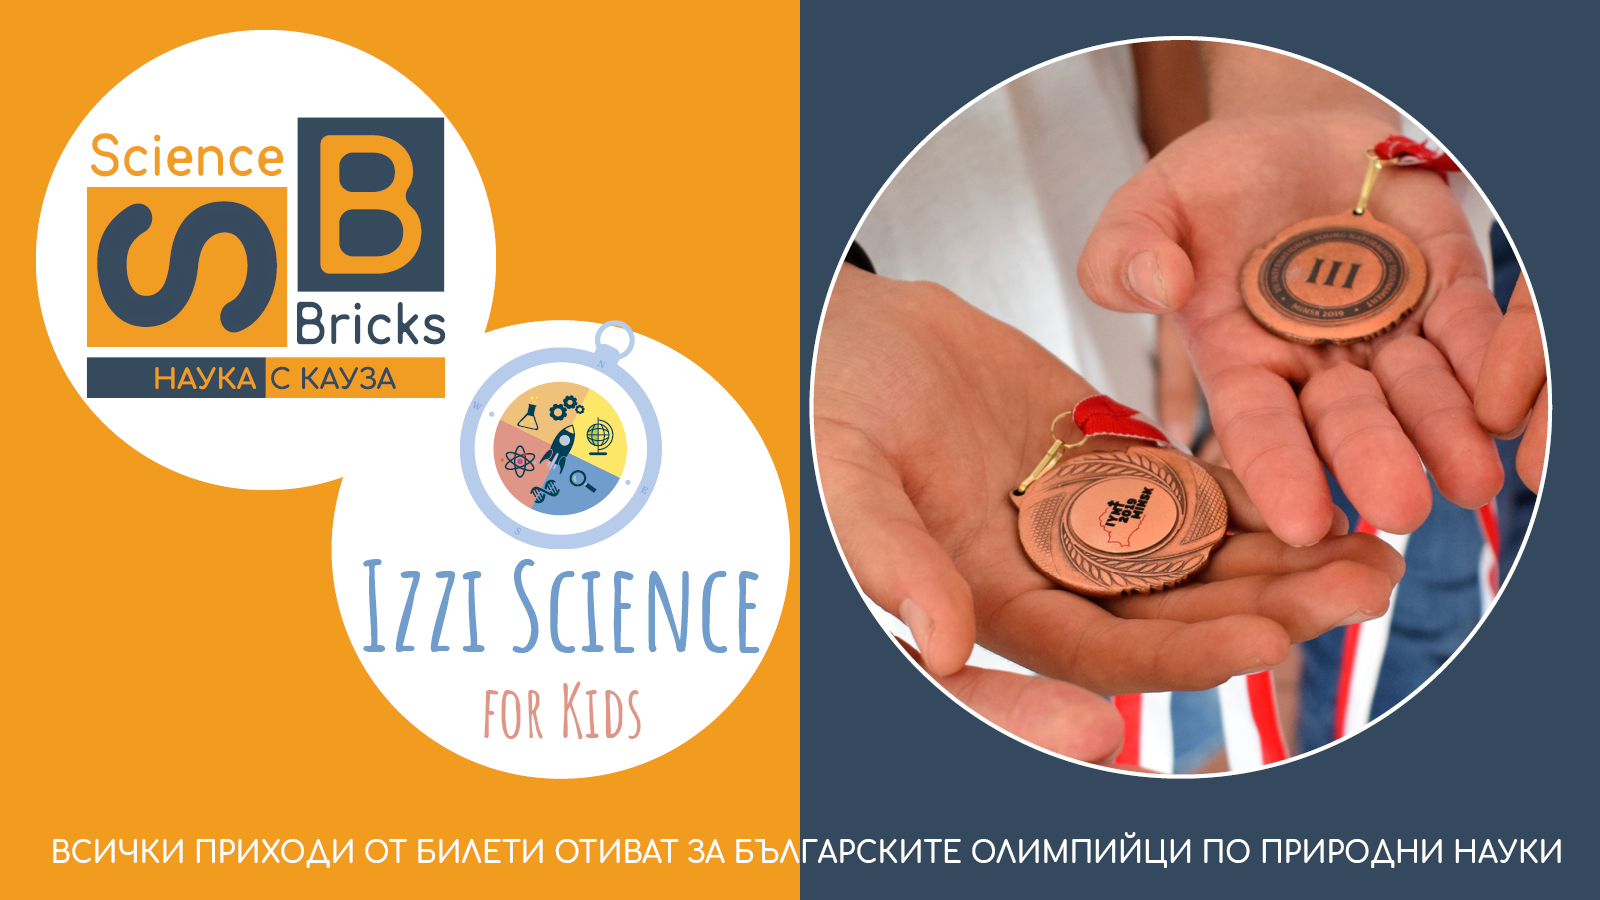 Izzi Science for Kids e основен партньор на Science Bricks